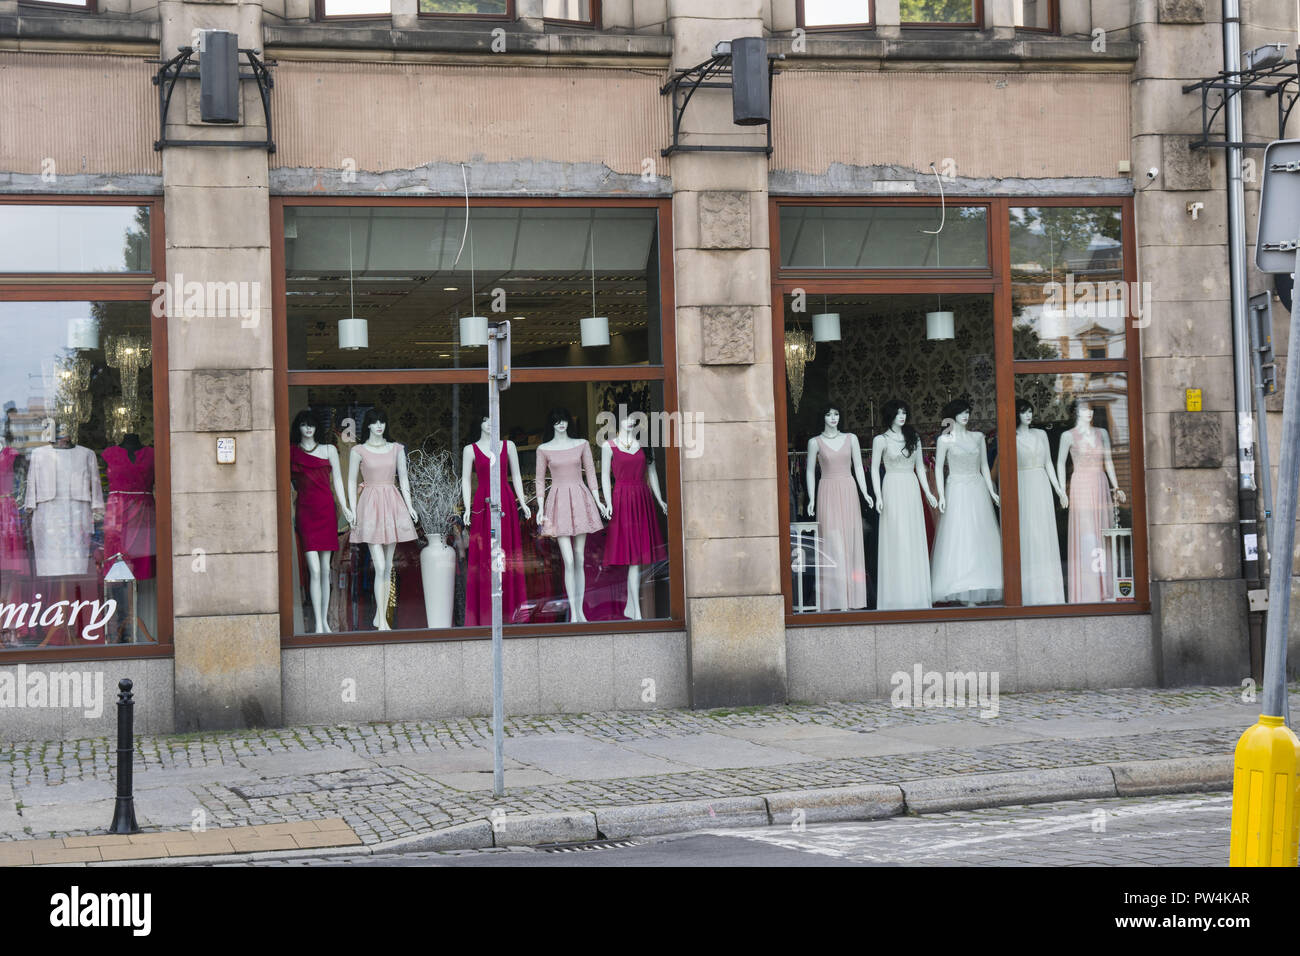 a2f62f849 Womens Clothes In A Shop Window Display Stock Photos   Womens ...